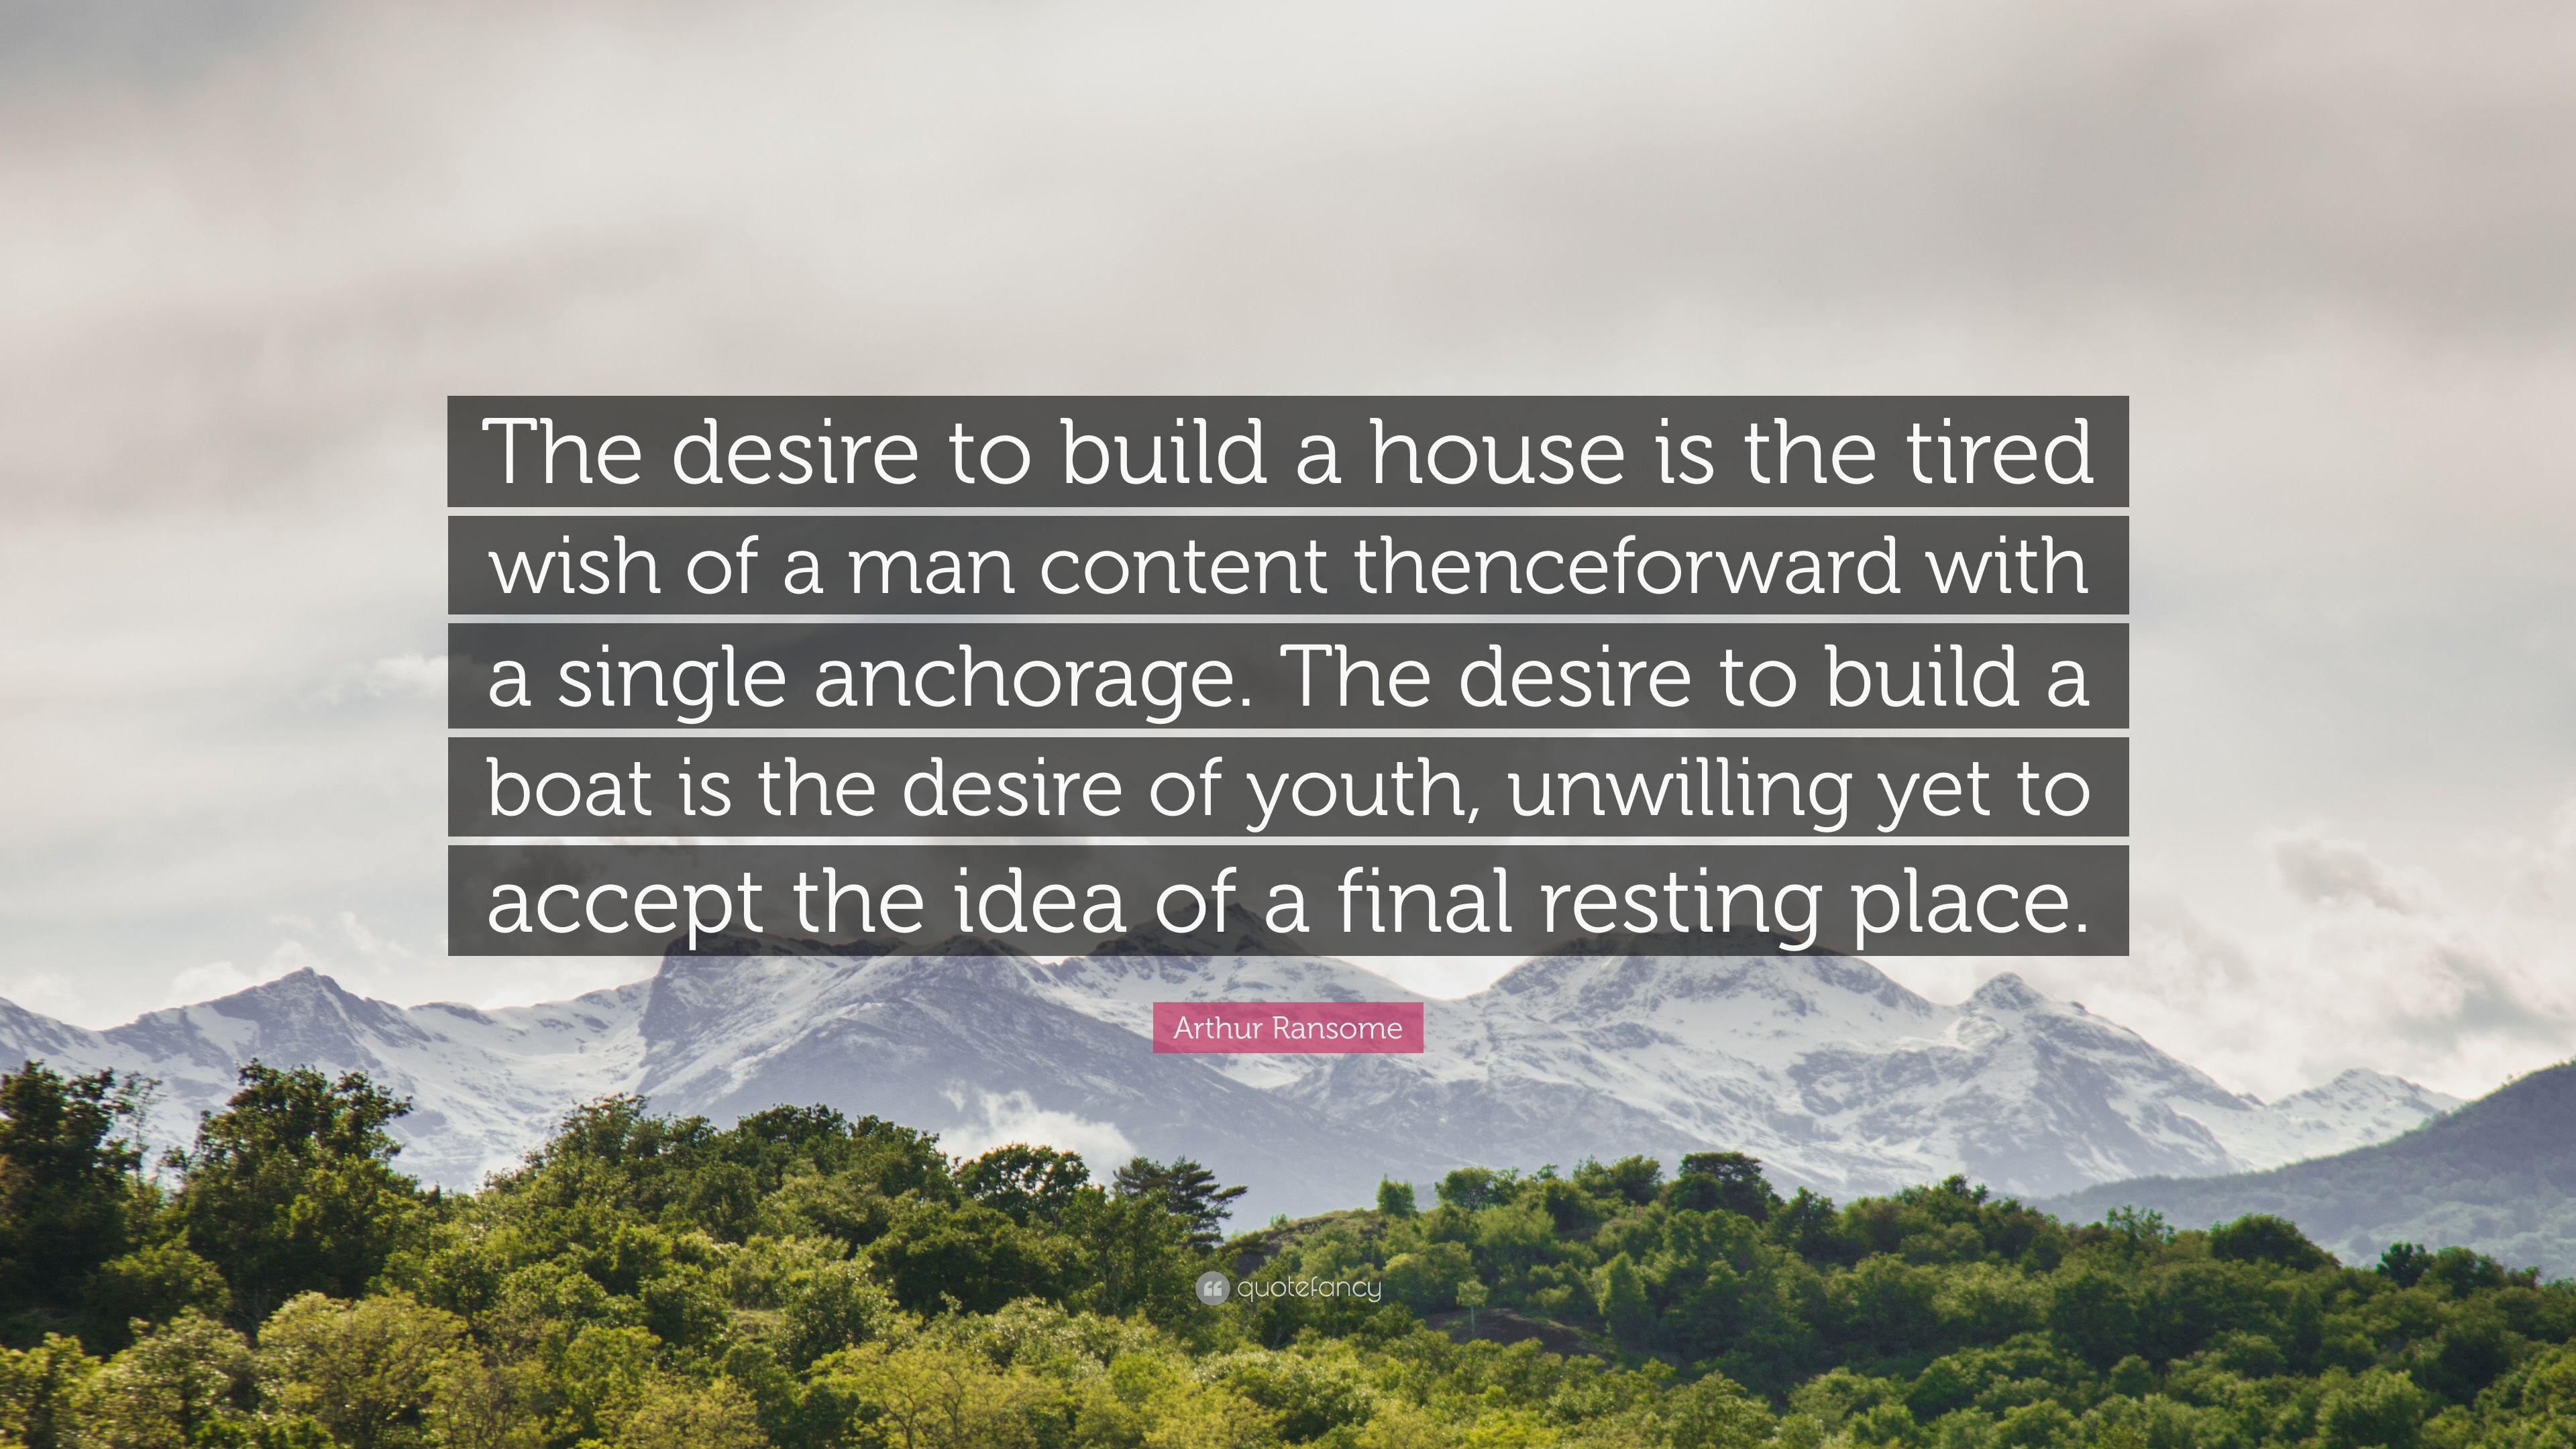 Superior Arthur Ransome Quote: U201cThe Desire To Build A House Is The Tired Wish Of